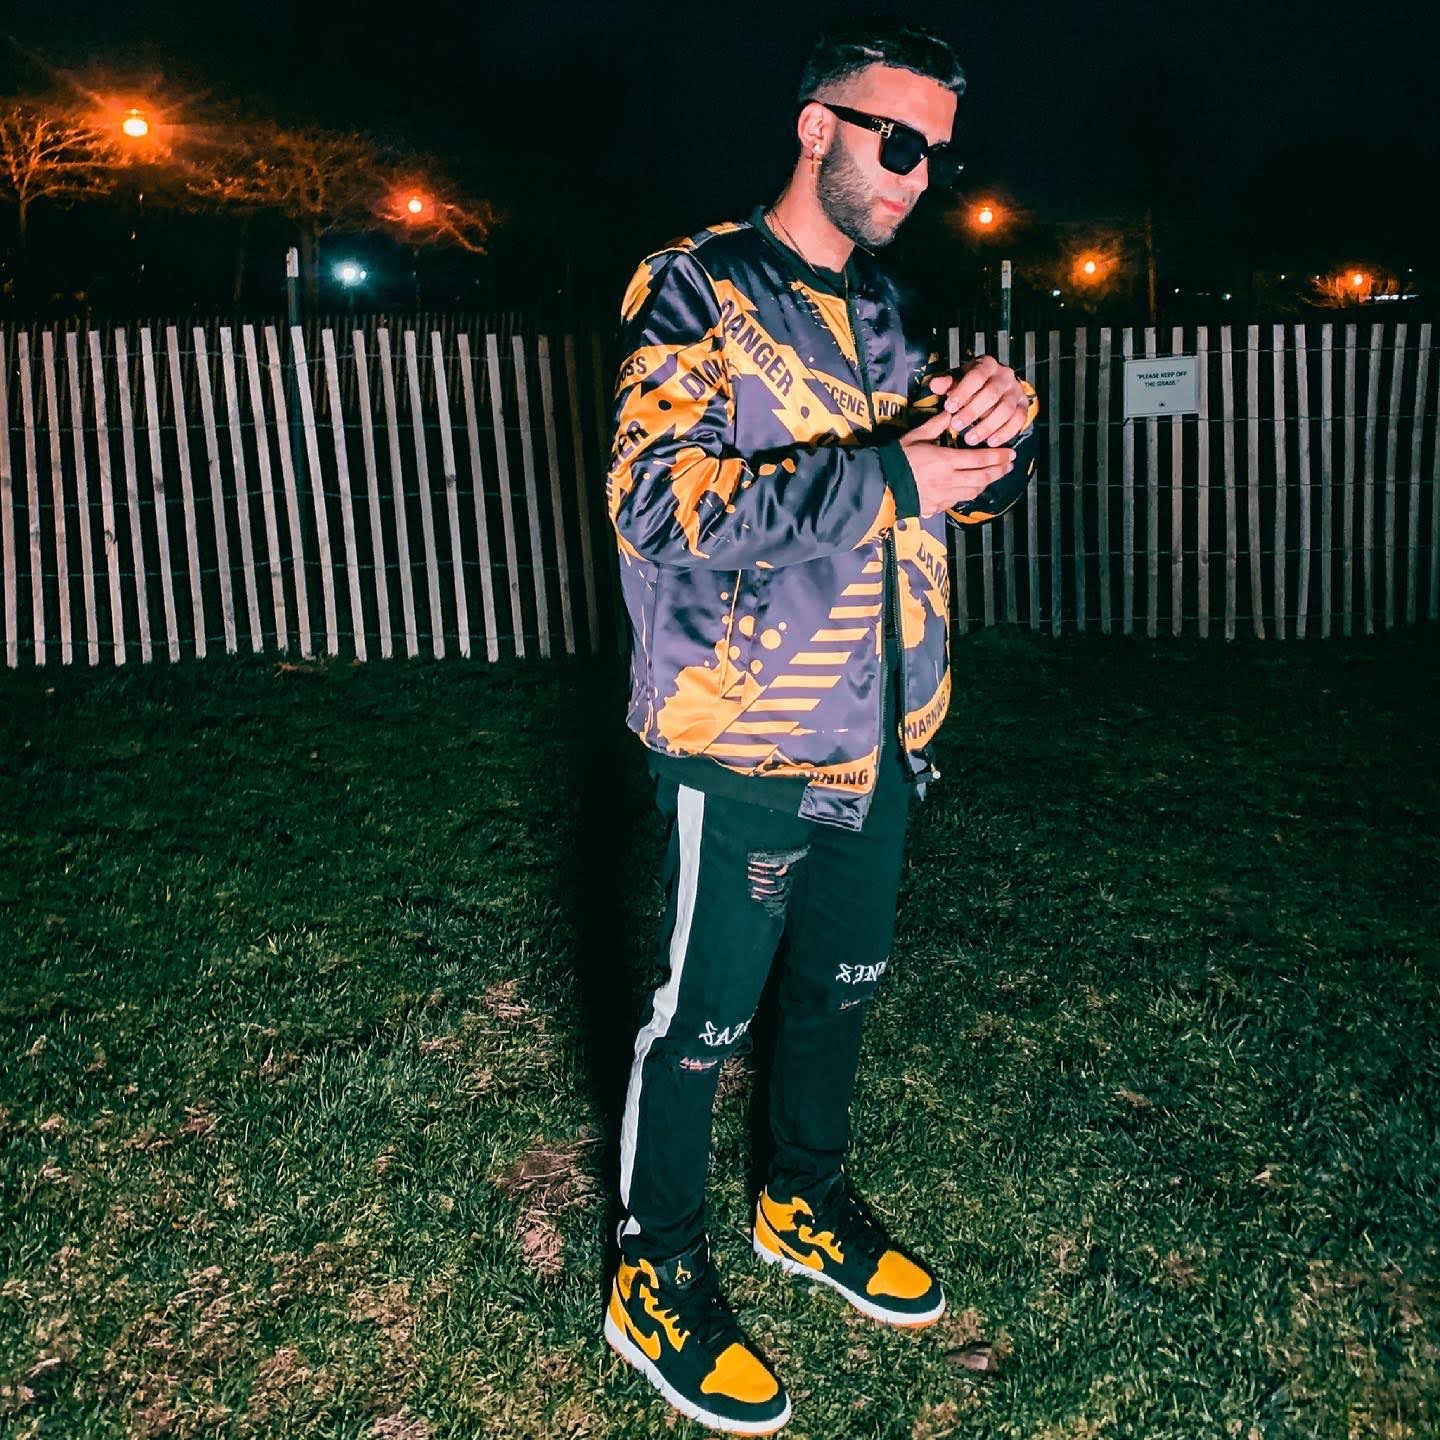 Coming New York-Based Latin Artist Kymged With New Songs